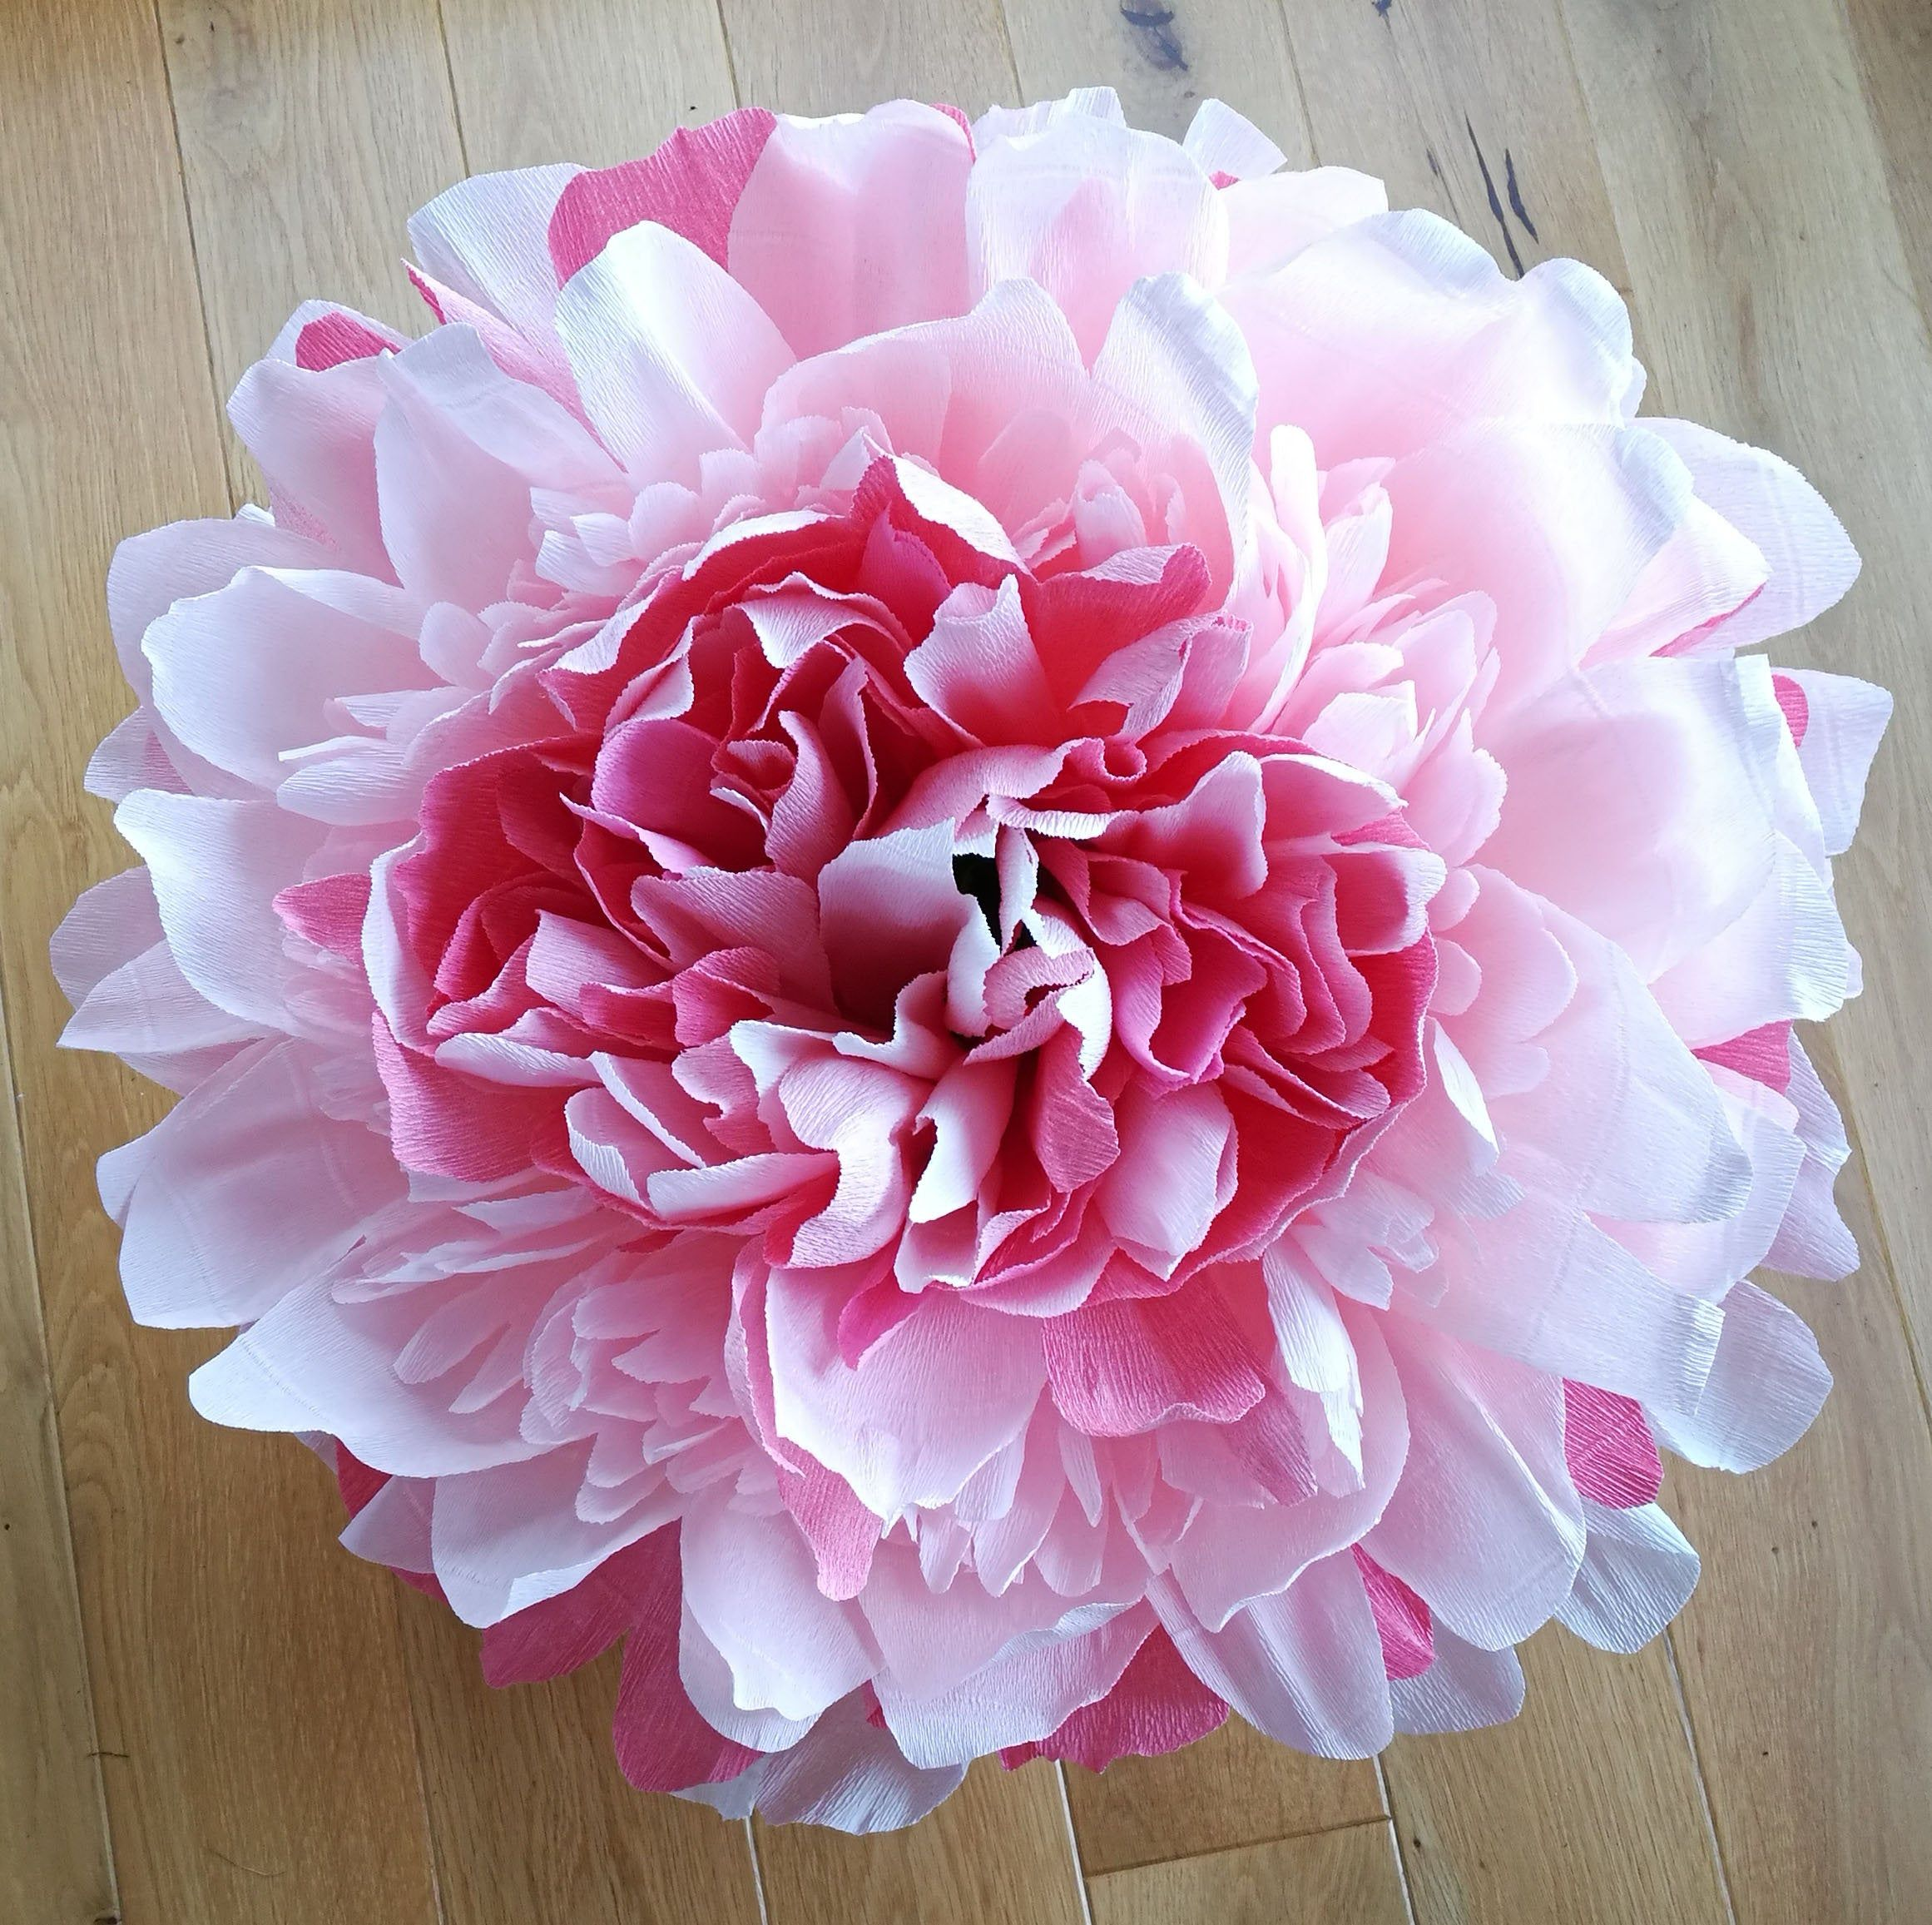 Giant Pink Crepe Paper Peony Decoration Pink Peony Lamp Large